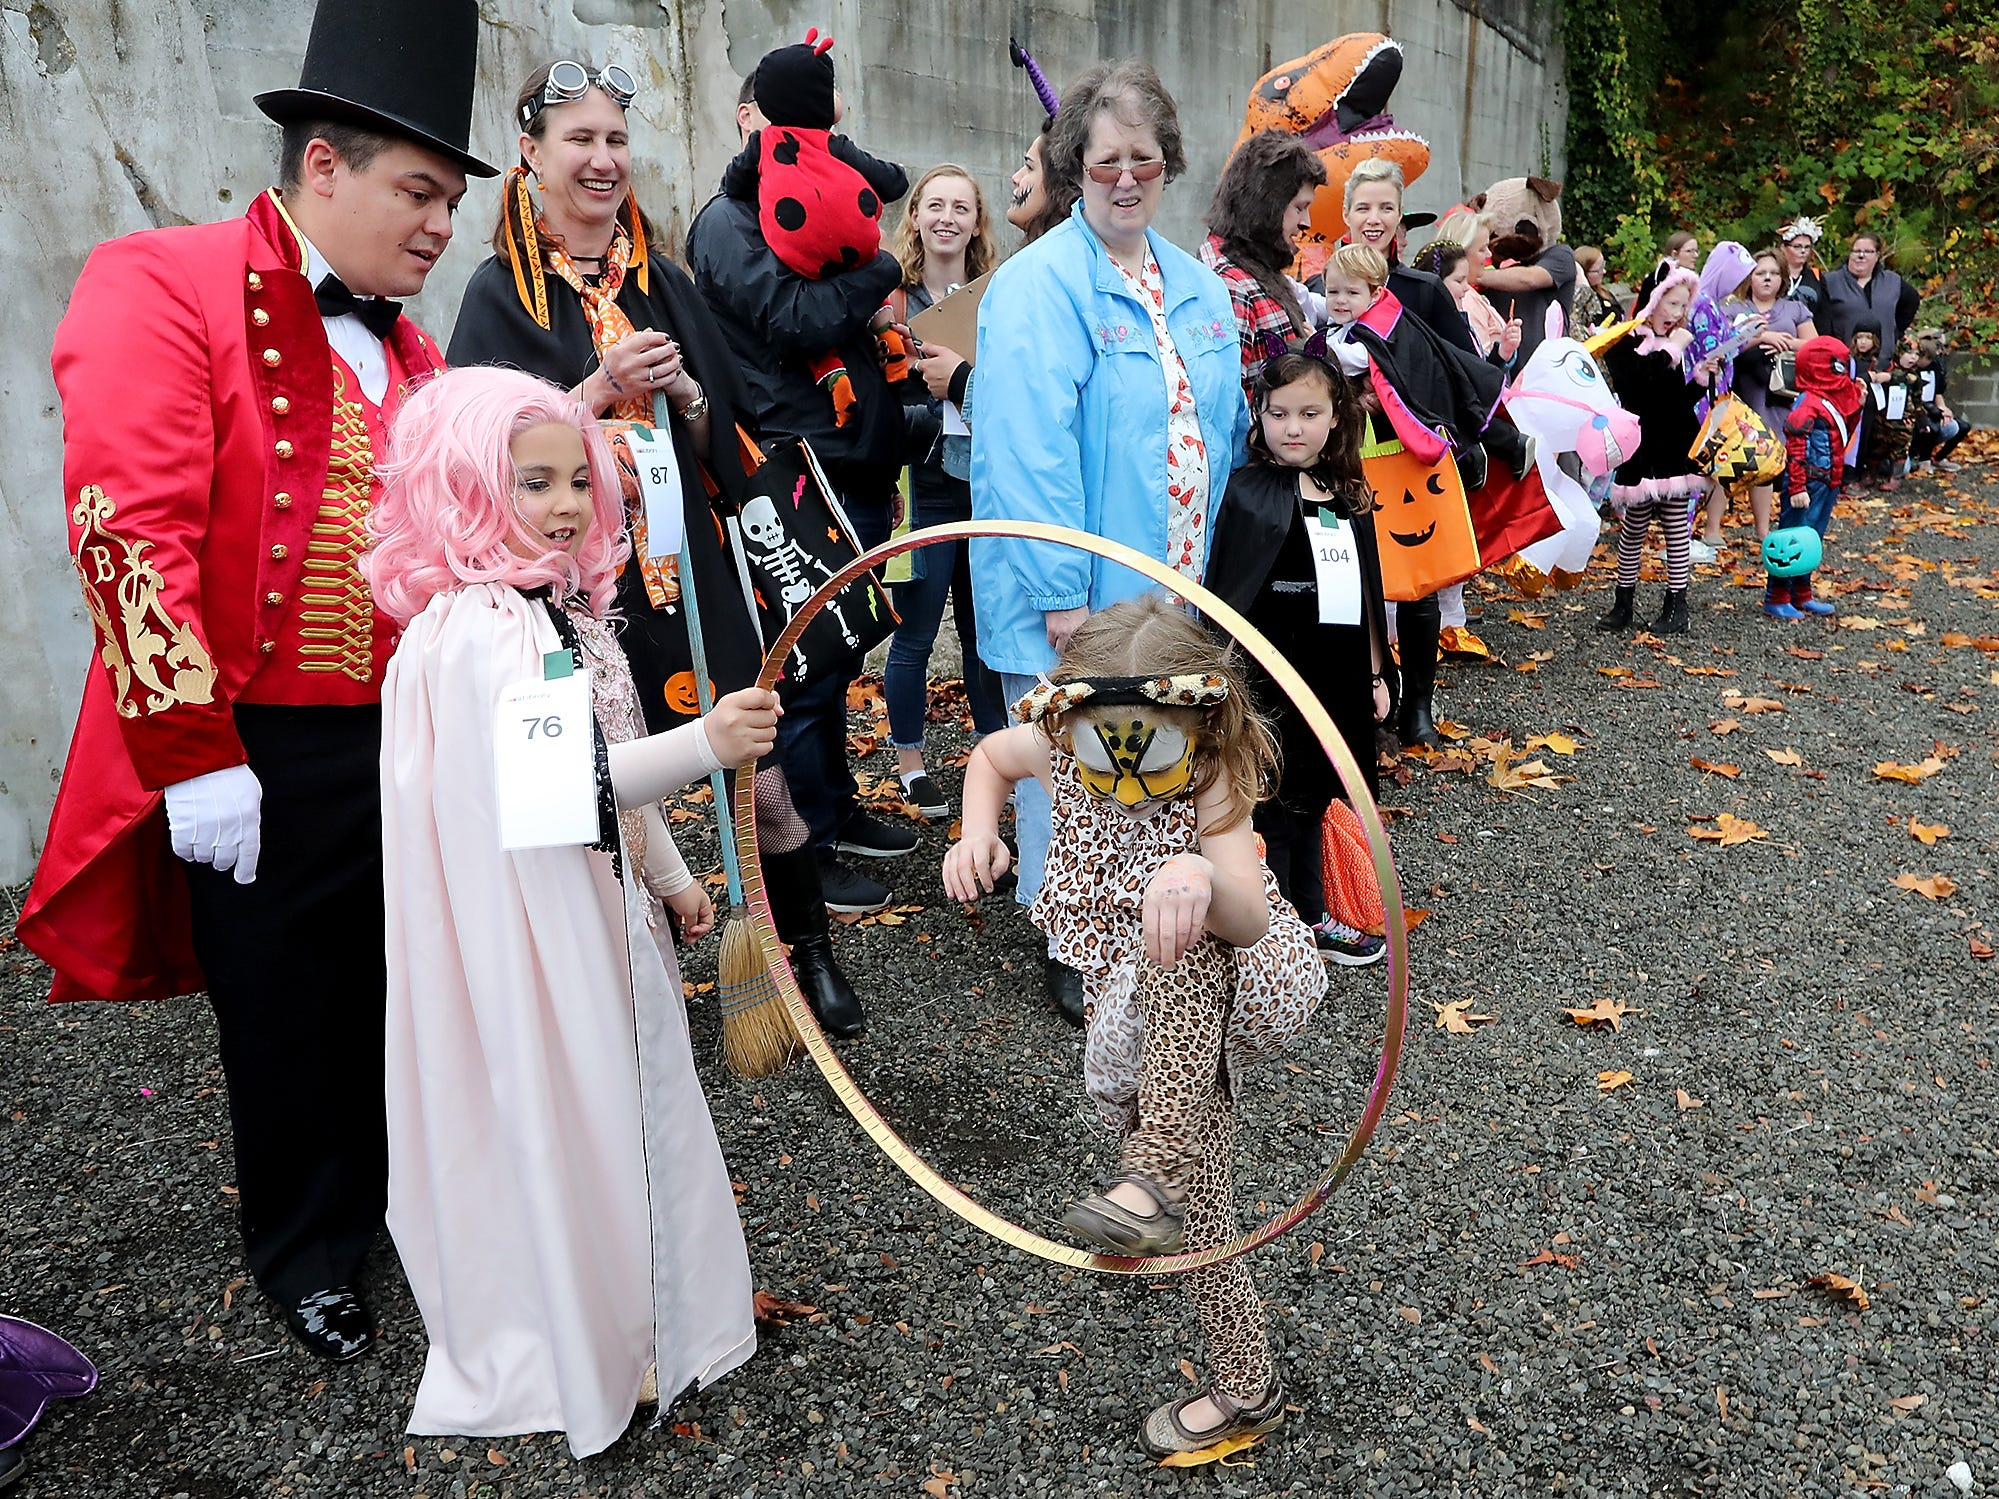 Dressed as a circus performer Dahlia Iguina, 6, holds out her hoop as Sasha Morris, 6, (dressed as a cheetah) jumps through it while the two perform the trick for the judges during the costume contest at Spookfest in downtown Port Orchard on Saturday, October 27, 2018. The two came up with the trick as they were standing next to each other in line for judging.